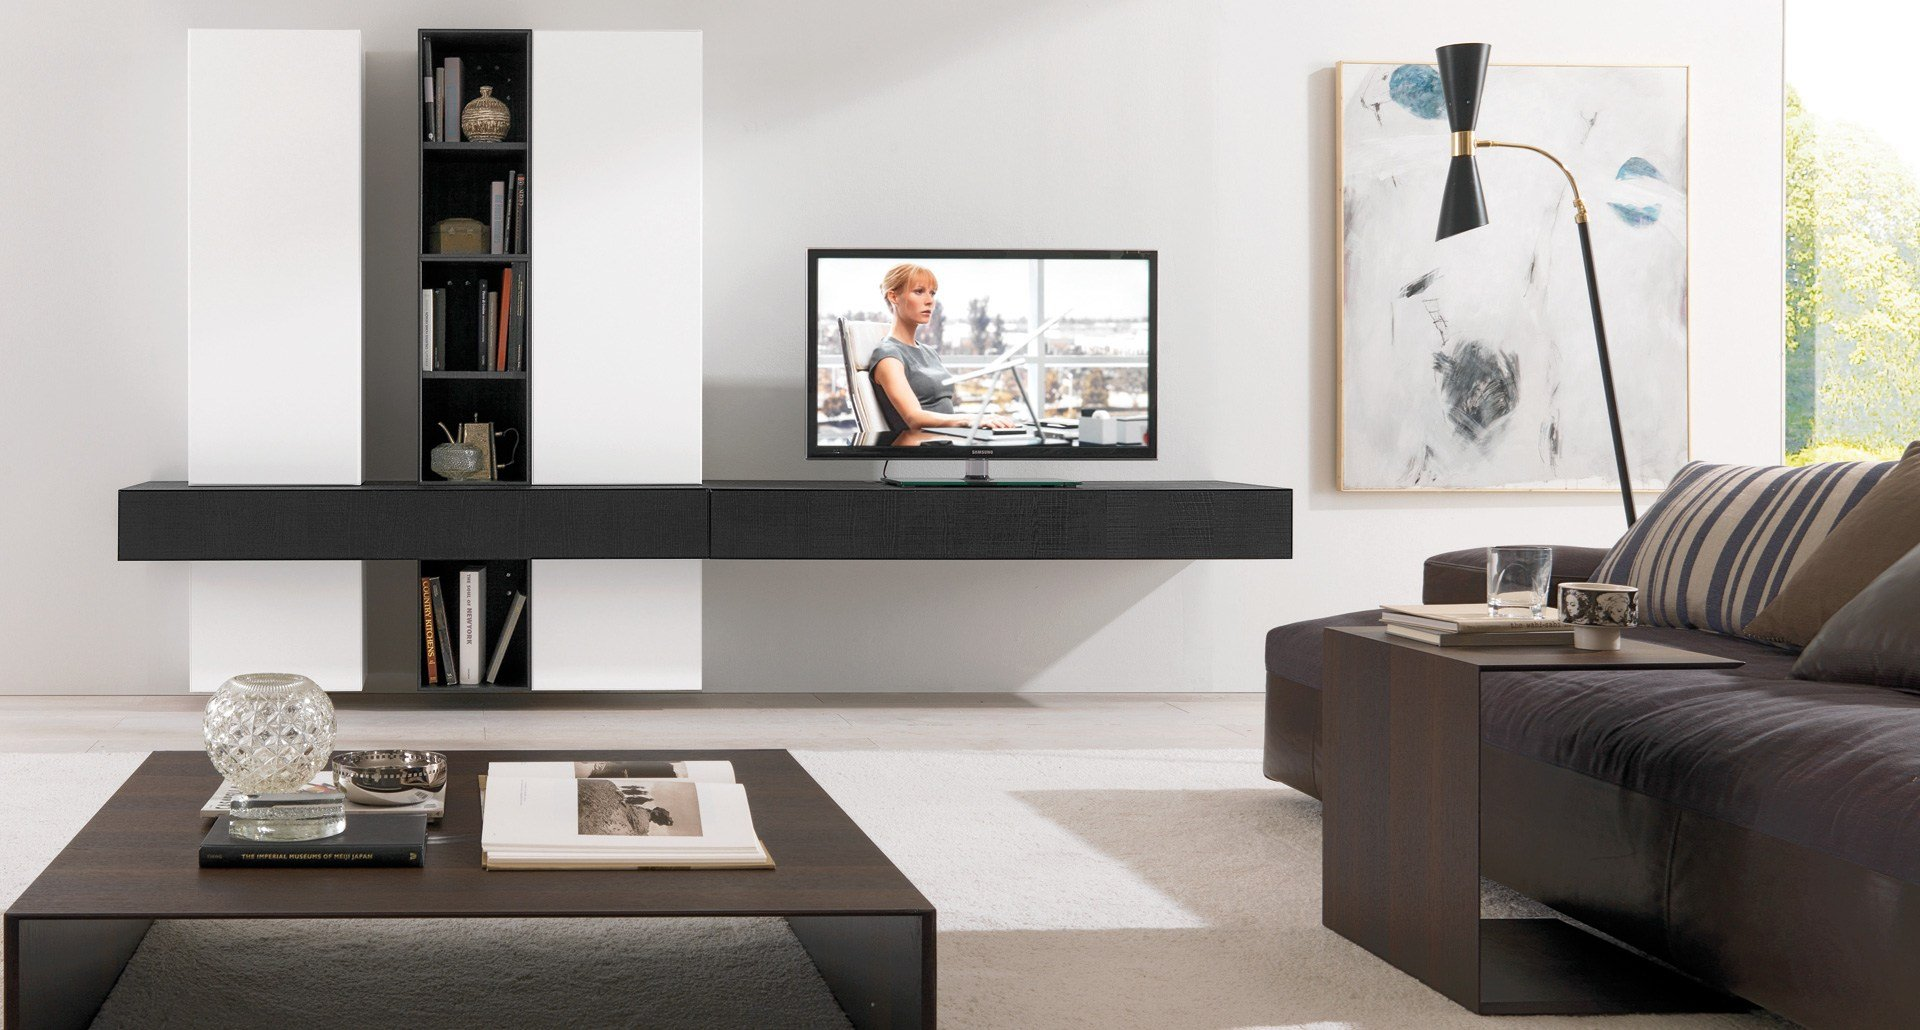 Meuble Support Mural Tv Maison Design Wiblia Com # Photos De Meubles Pose Tele En Bois